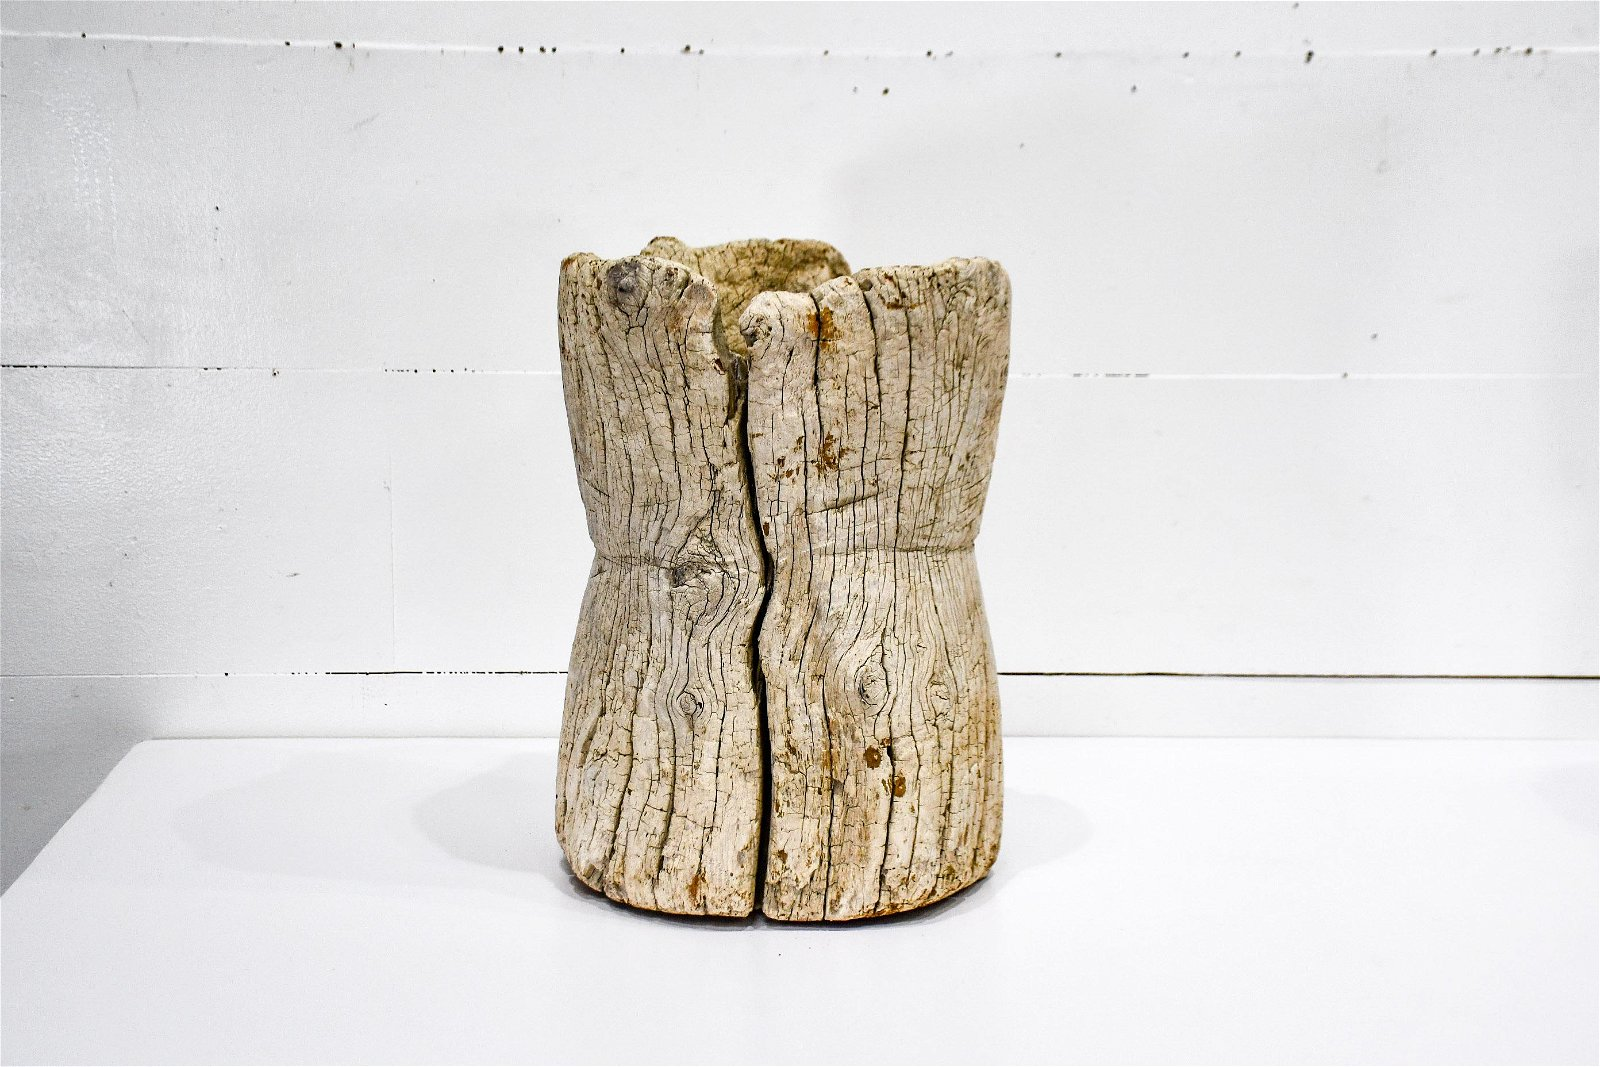 """Early Wooden Mortar 19 1/2""""H,   13 1/2"""" diam."""